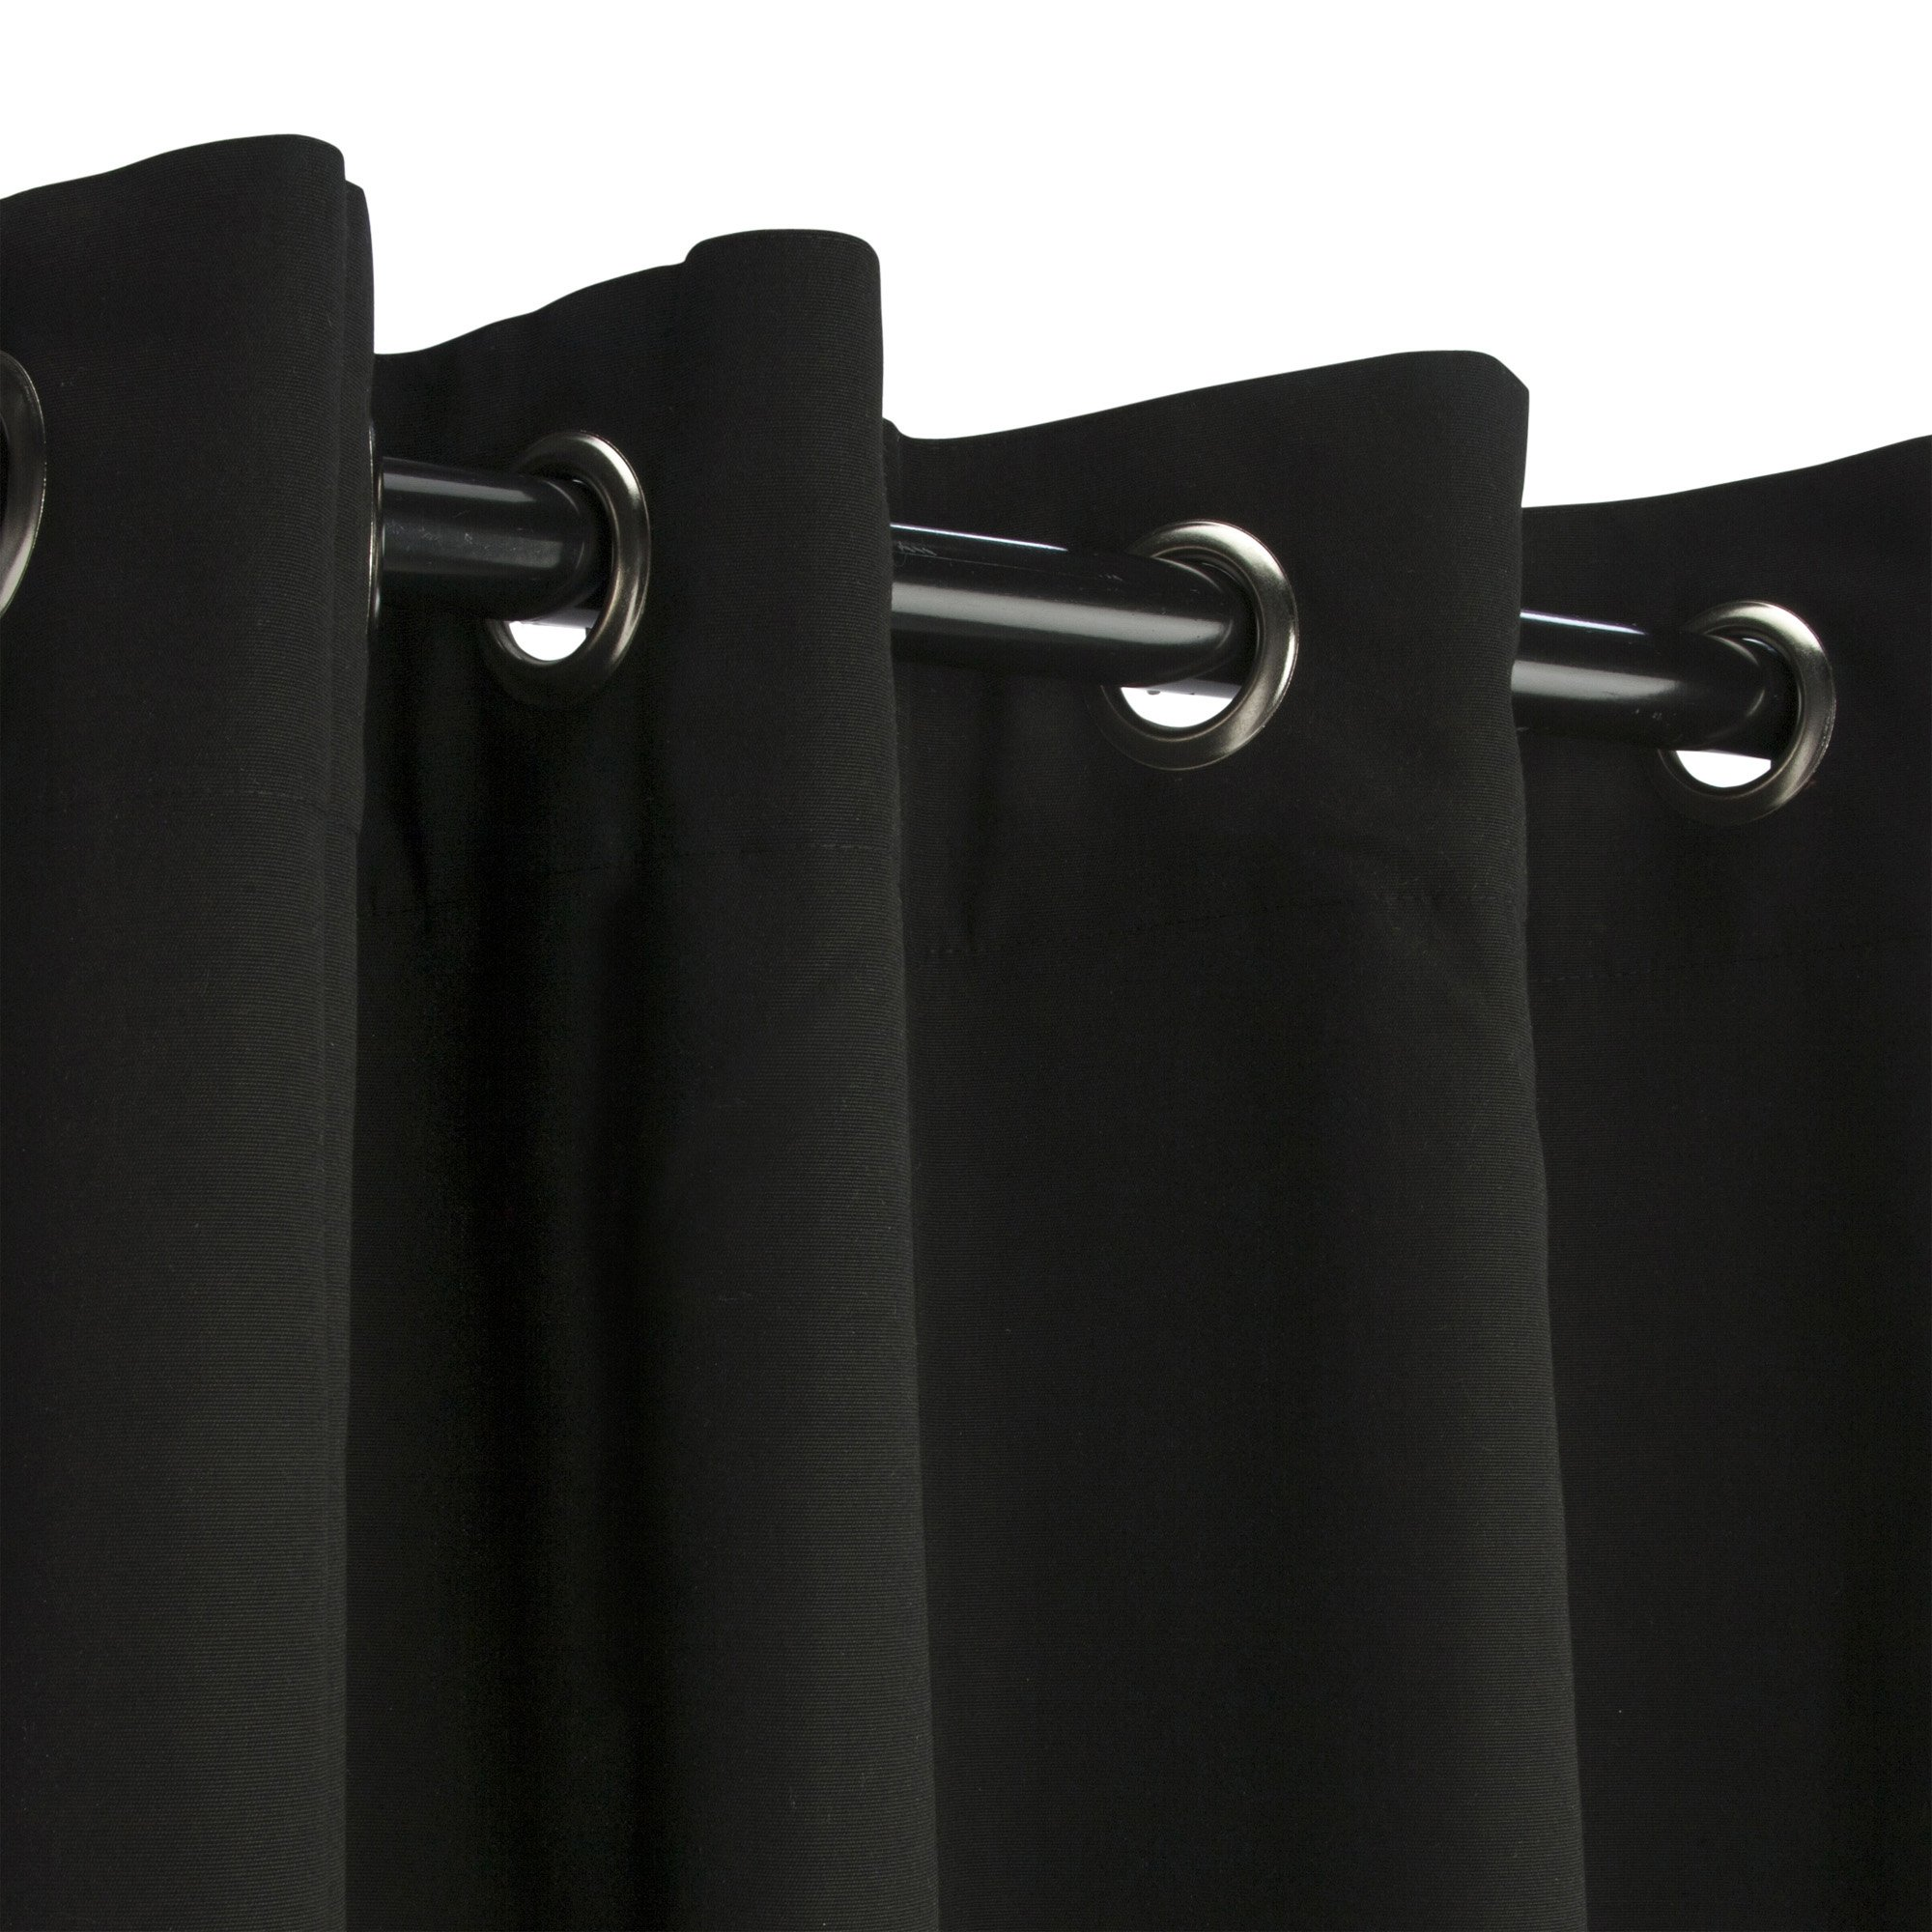 Sunbrella Outdoor Curtain Panel, Nickel Grommet Top, 50 by 120 Inch, Black (Available in Multiple Colors and Sizes) Includes Custom Storage Bag; Perfect For Your Patio, Porch, Gazebo, or Pergola by Sunbrella (Image #1)